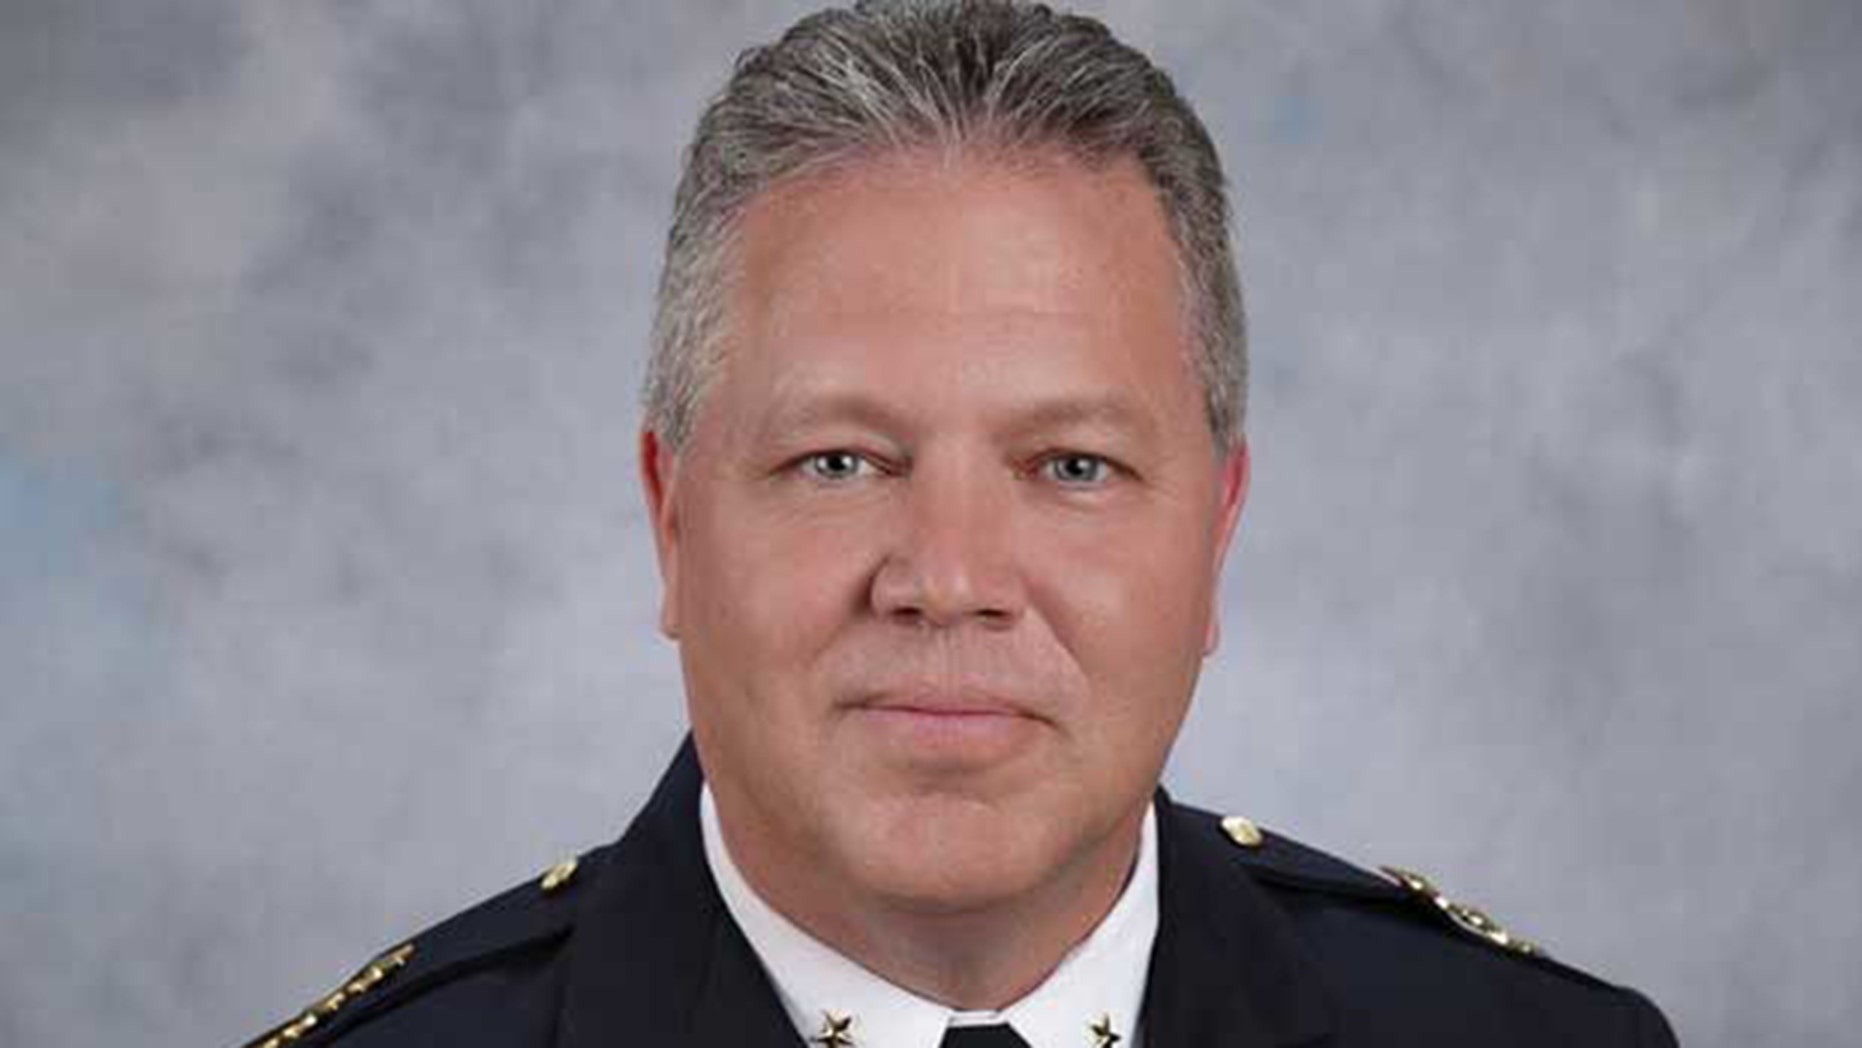 Bellevue Police Chief Steve Mylett was reinstated Monday after an investigation by a neighboring police department found no evidence to substantiate sexual assault allegations.